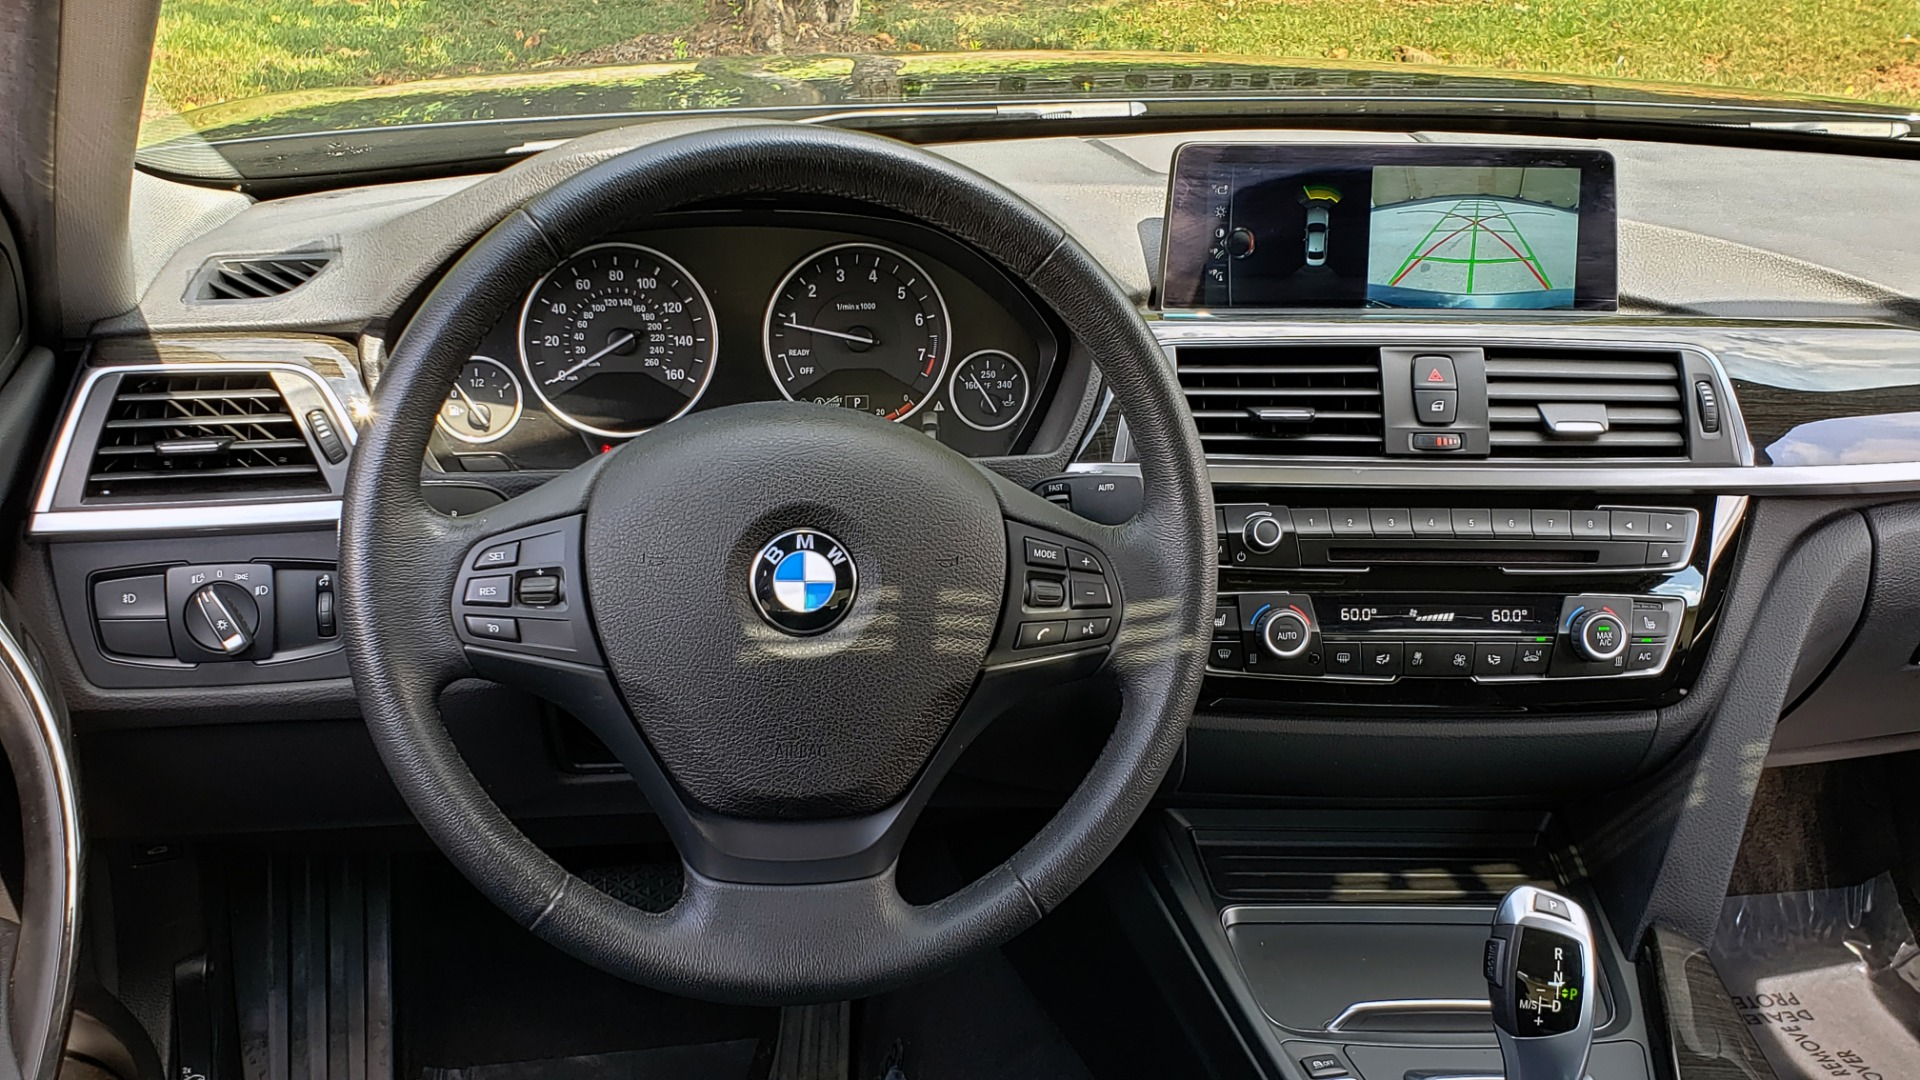 Used 2017 BMW 3 SERIES 320I XDRIVE / DRVR ASST / NAV / SUNROOF / HTD STS / REARVIEW for sale $21,995 at Formula Imports in Charlotte NC 28227 38